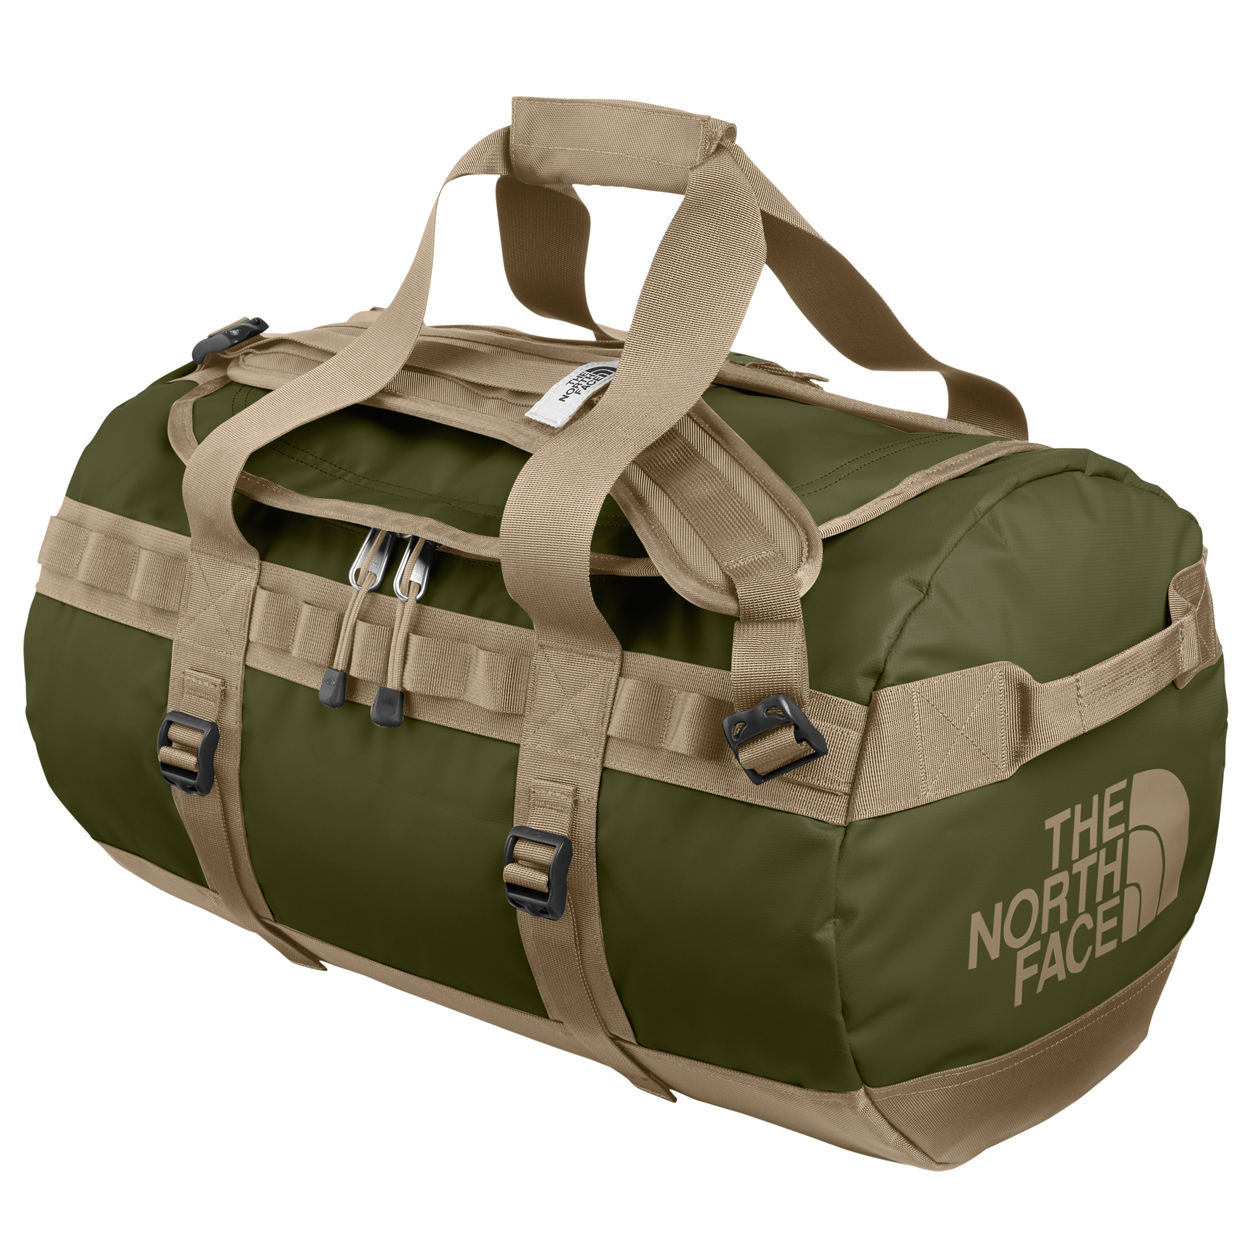 03ddd20420 The North Face Base Camp Duffel Bag S - Thorn Green £58.50